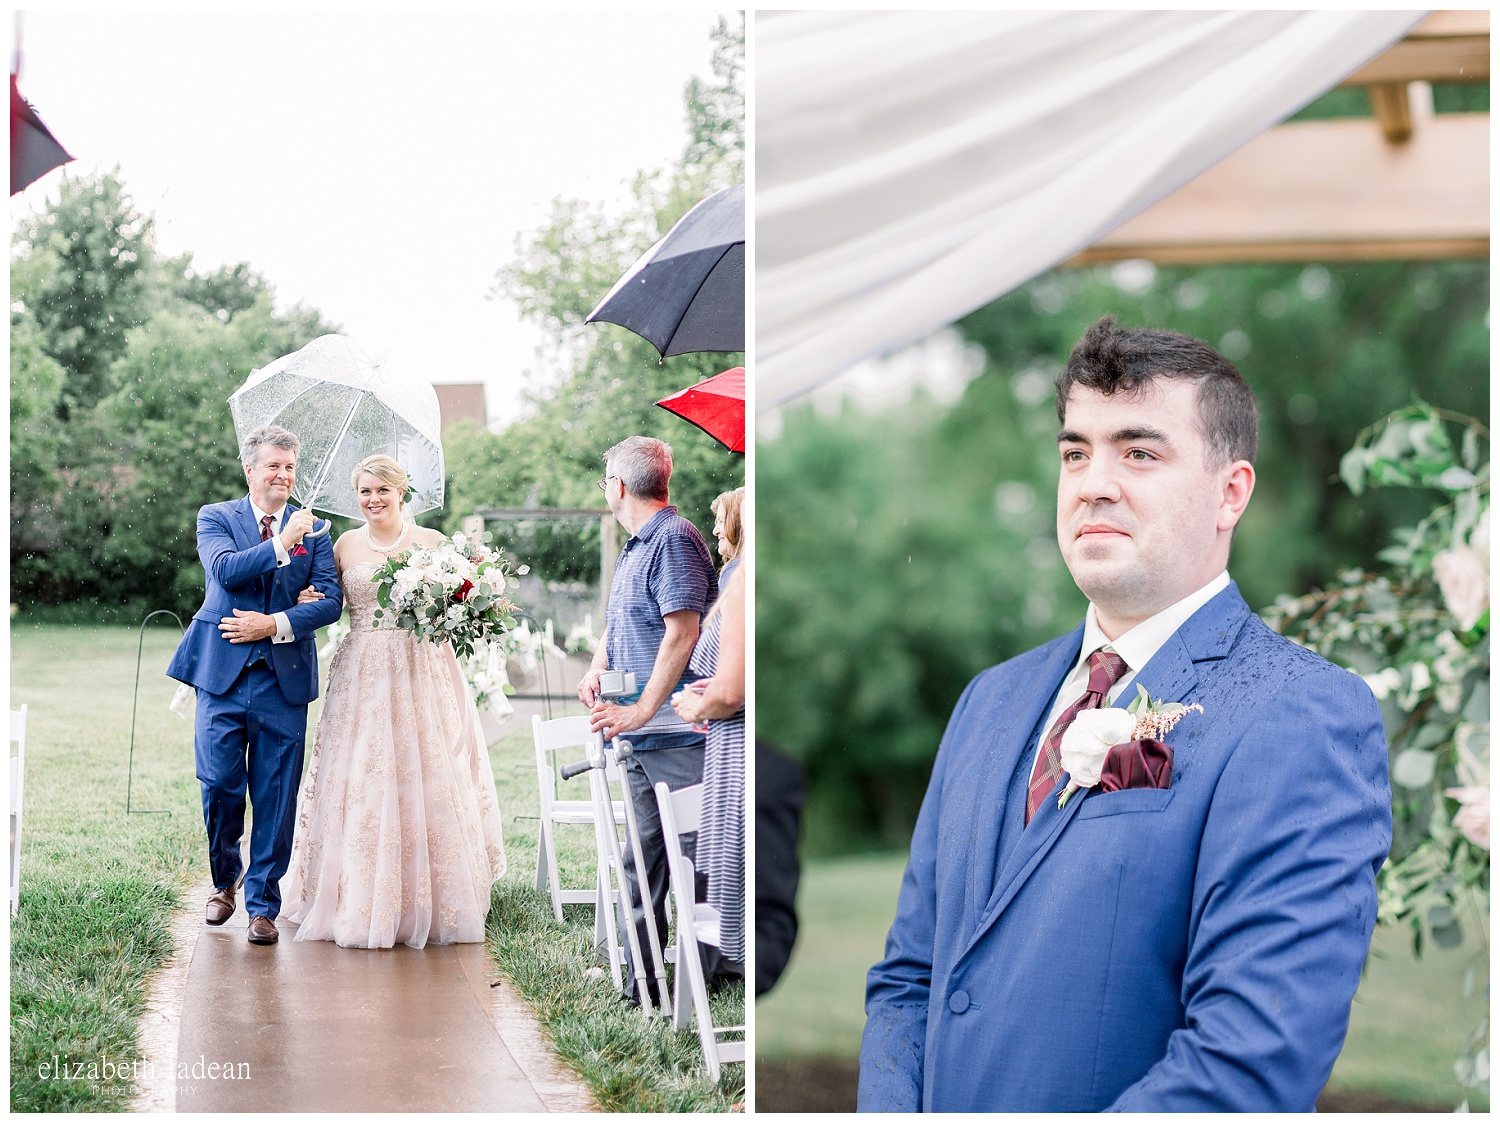 Rainy-KC-Wedding-Legacy-at-Green-Hills-H+J-0630-elizabeth-ladean-photography-photo-_8906.jpg